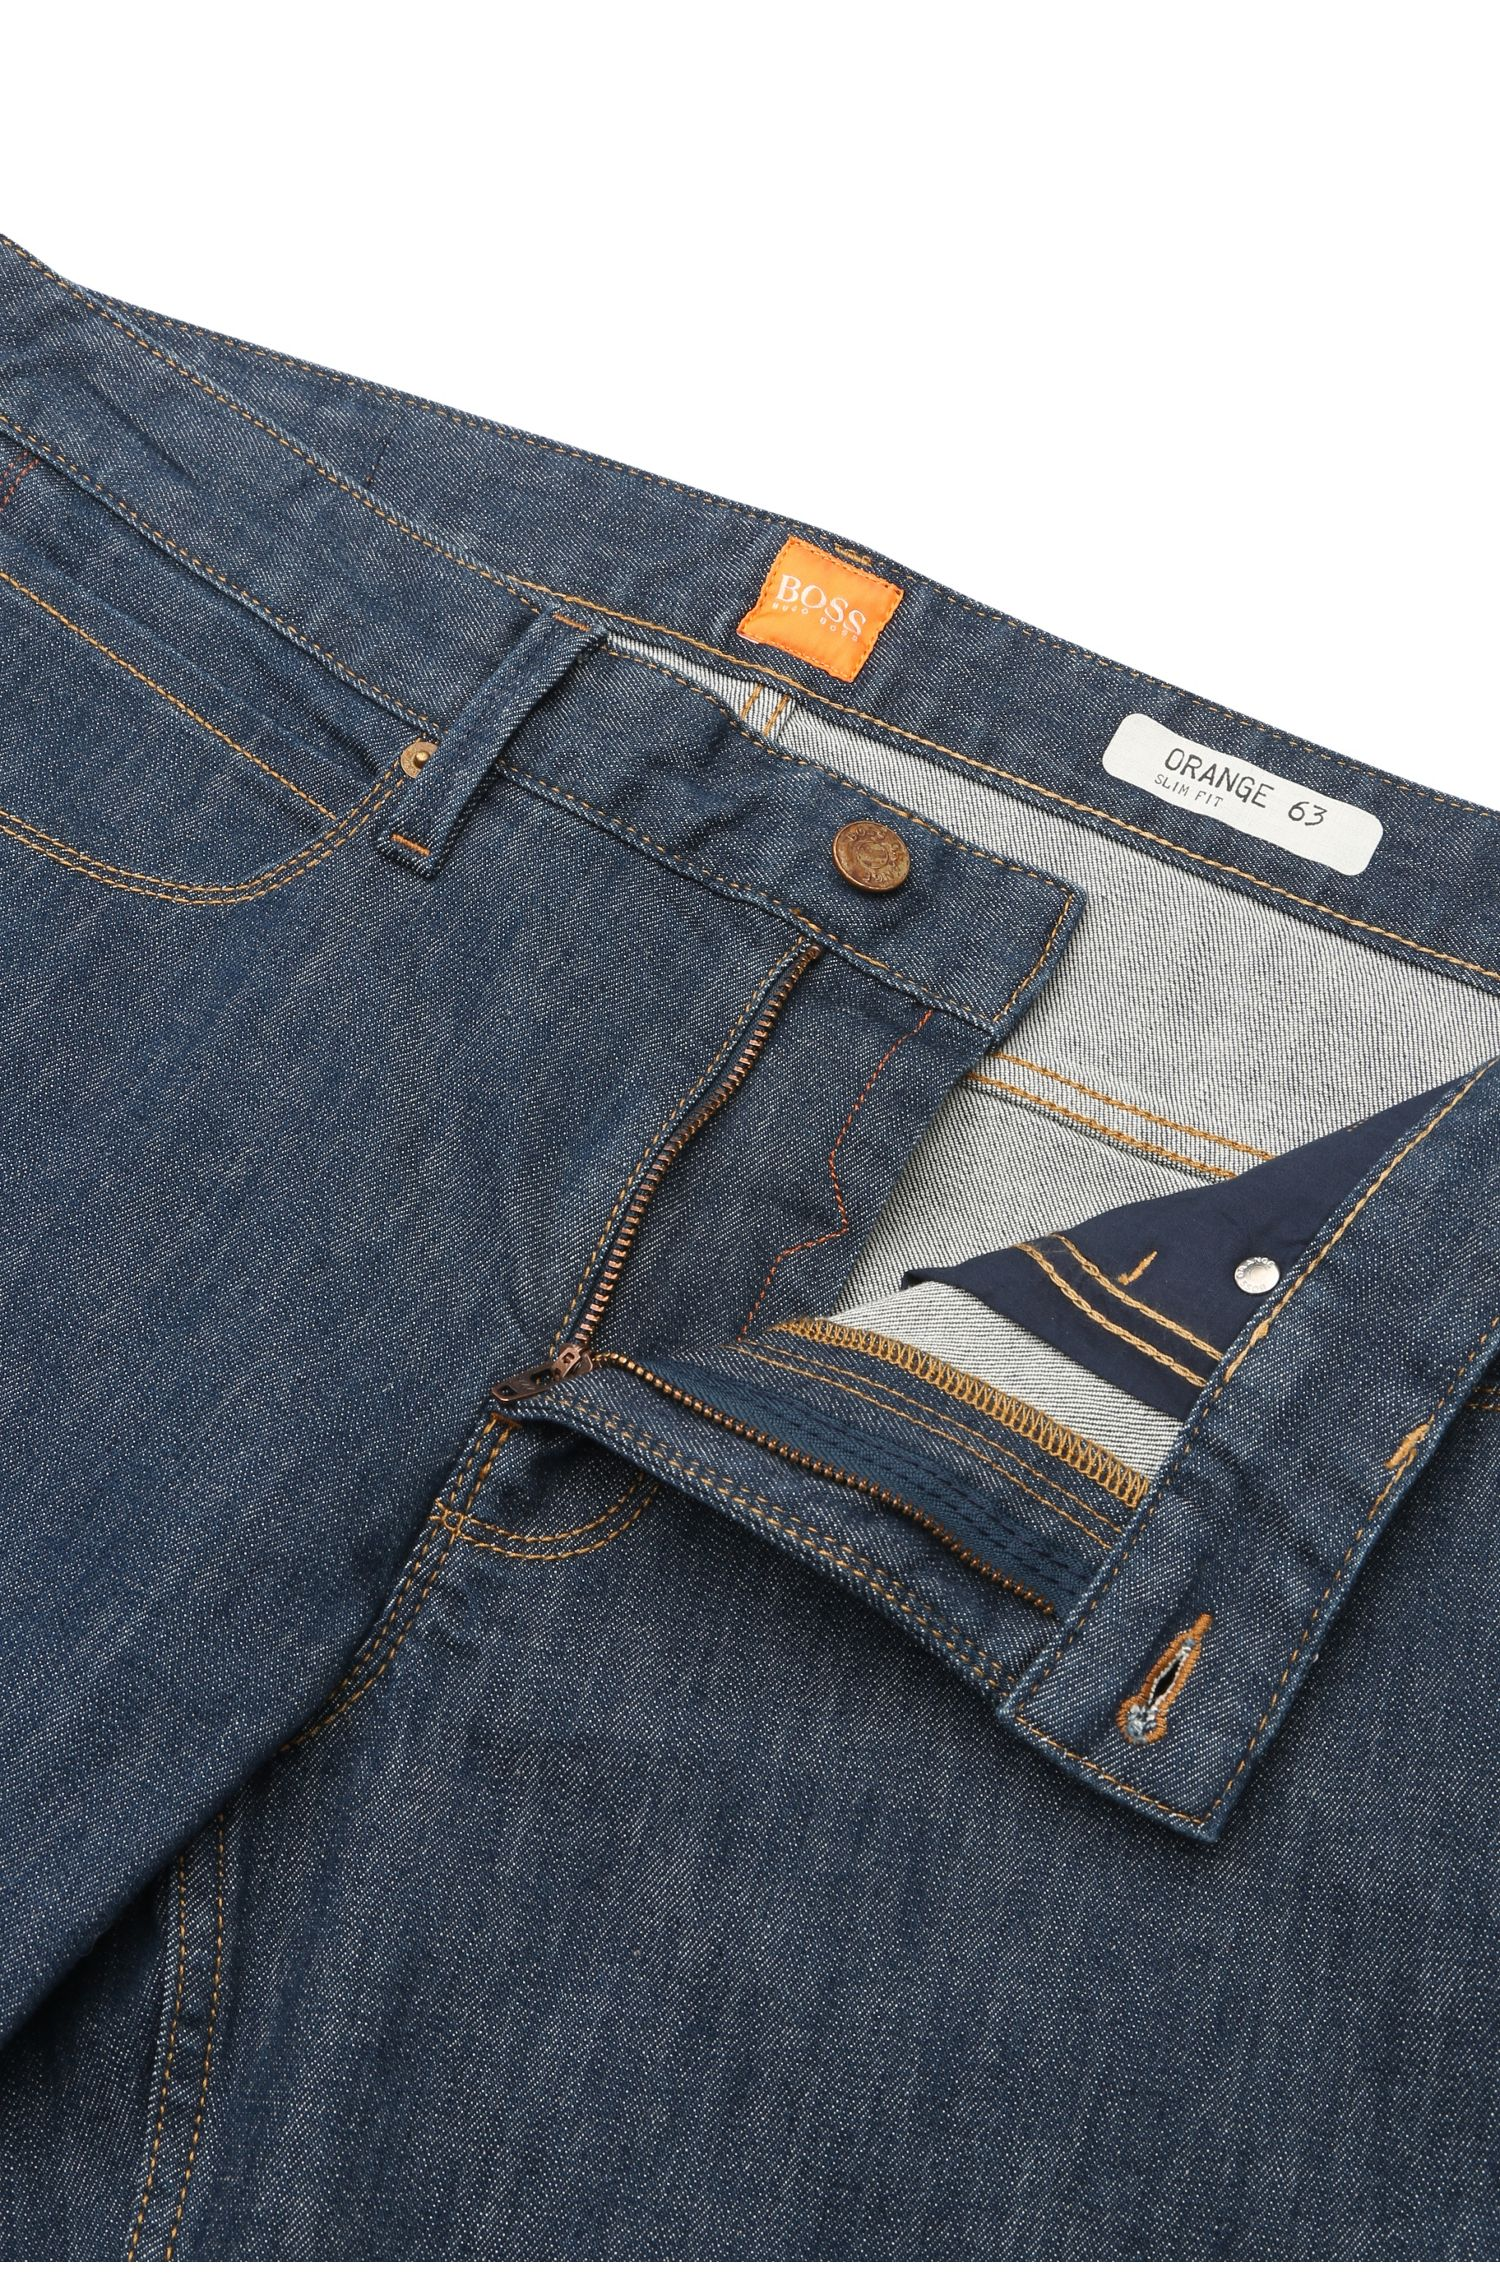 Gestructureerde slim-fit jeans met contrastnaden: 'Orange63'